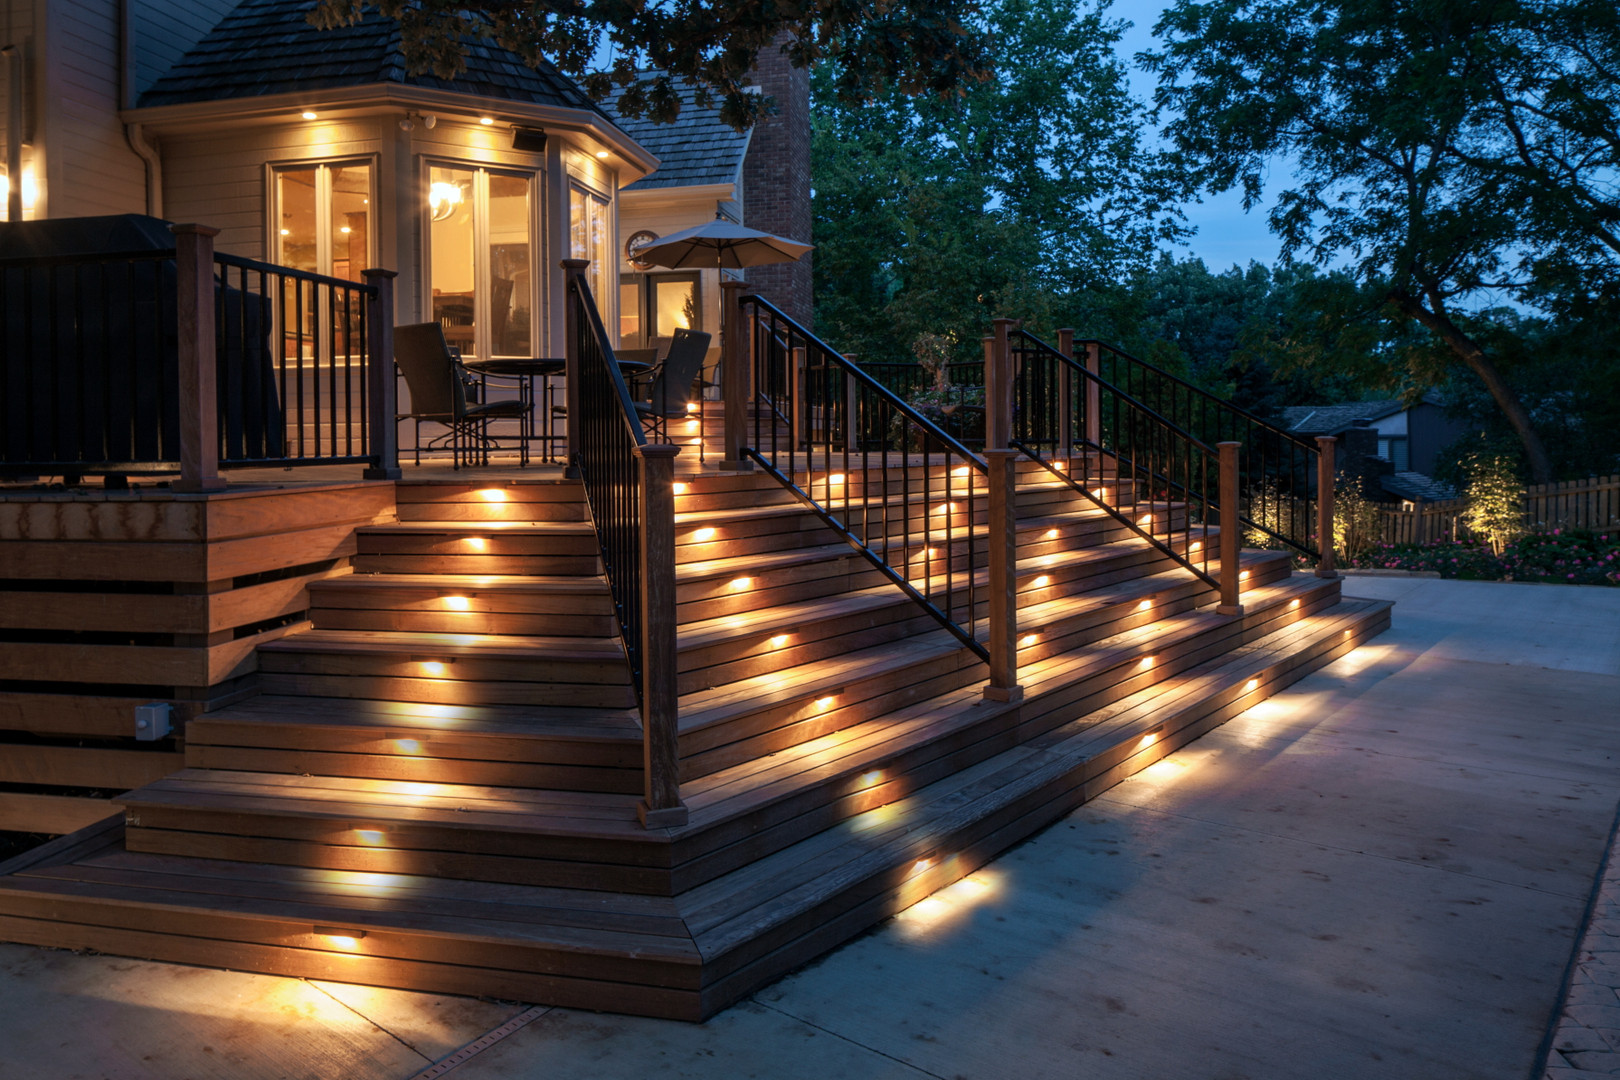 Outdoor Lighting Ideas 25 Amazing Deck Lights Ideas Hard and Simple Outdoor